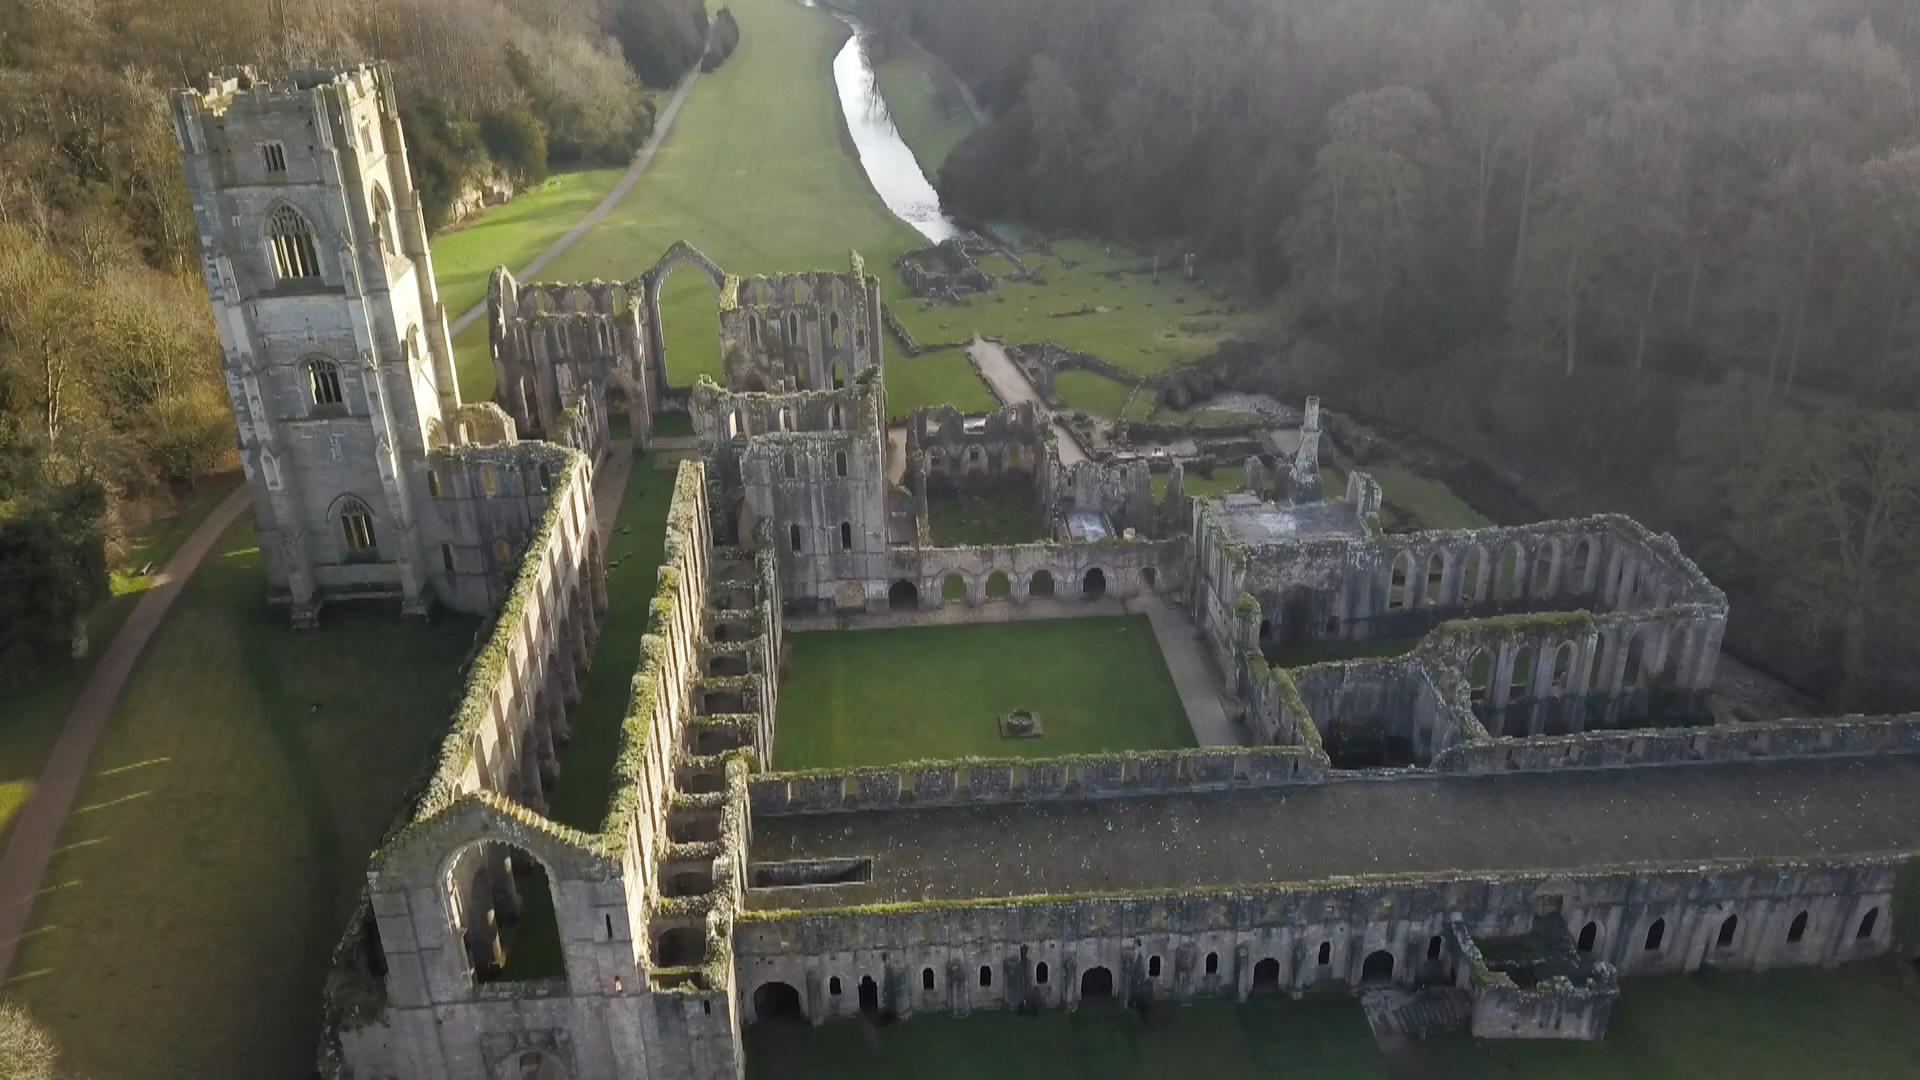 National Trust says heritage sites at risk from climate change